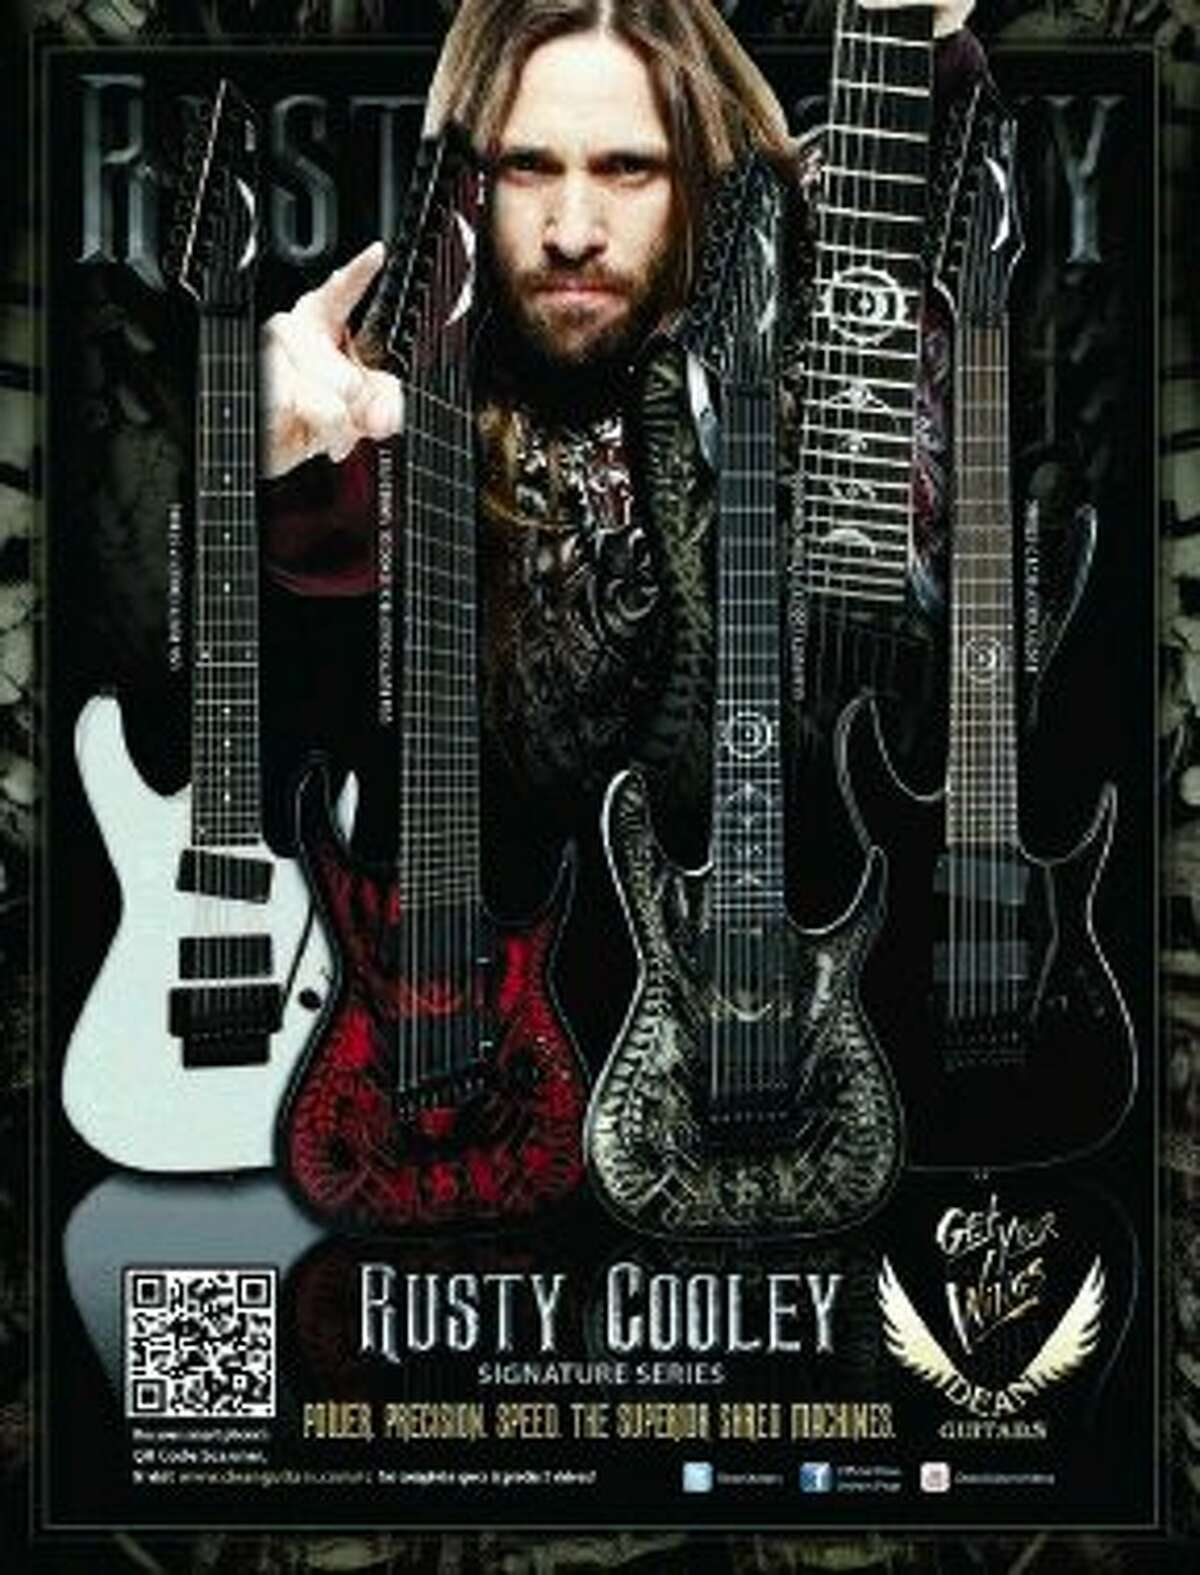 Shred guitar maestro Rusty Cooley has numerous signature Dean Guitar production model guitars named after him. Hermes Music will offer deals on Dean Guitars during the day of the June 27 guitar clinic event.